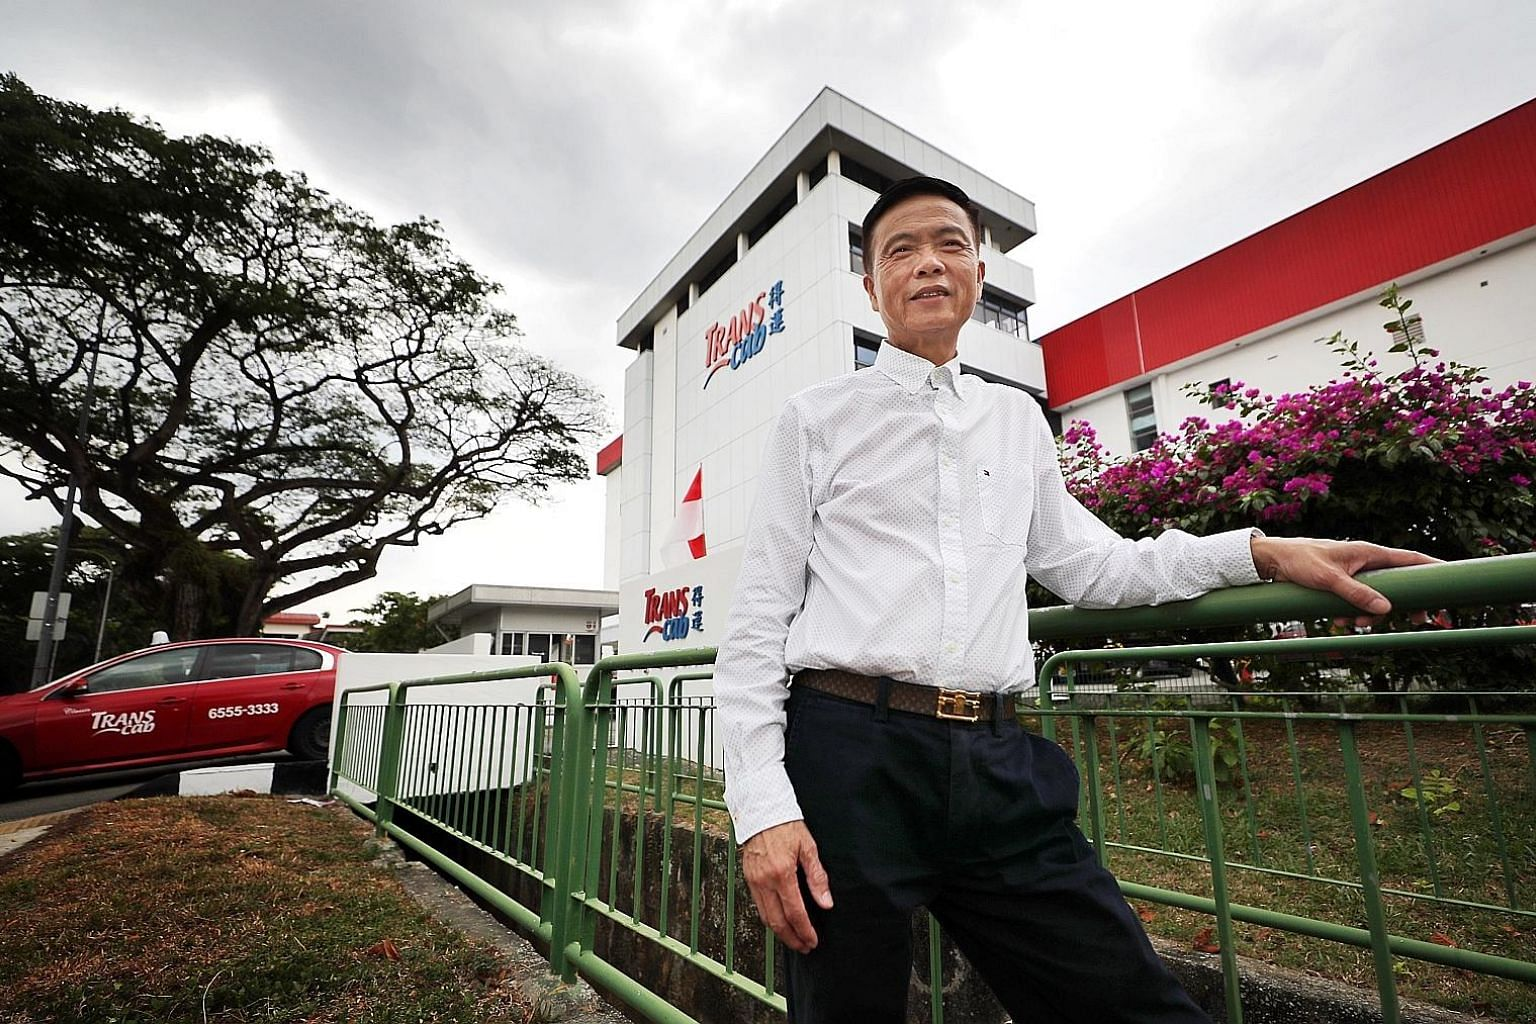 Mr Teo Kiang Ang expects private-hire to make up 10 per cent of his business by the year end. He says he may even venture into car importing to complement his two new businesses.